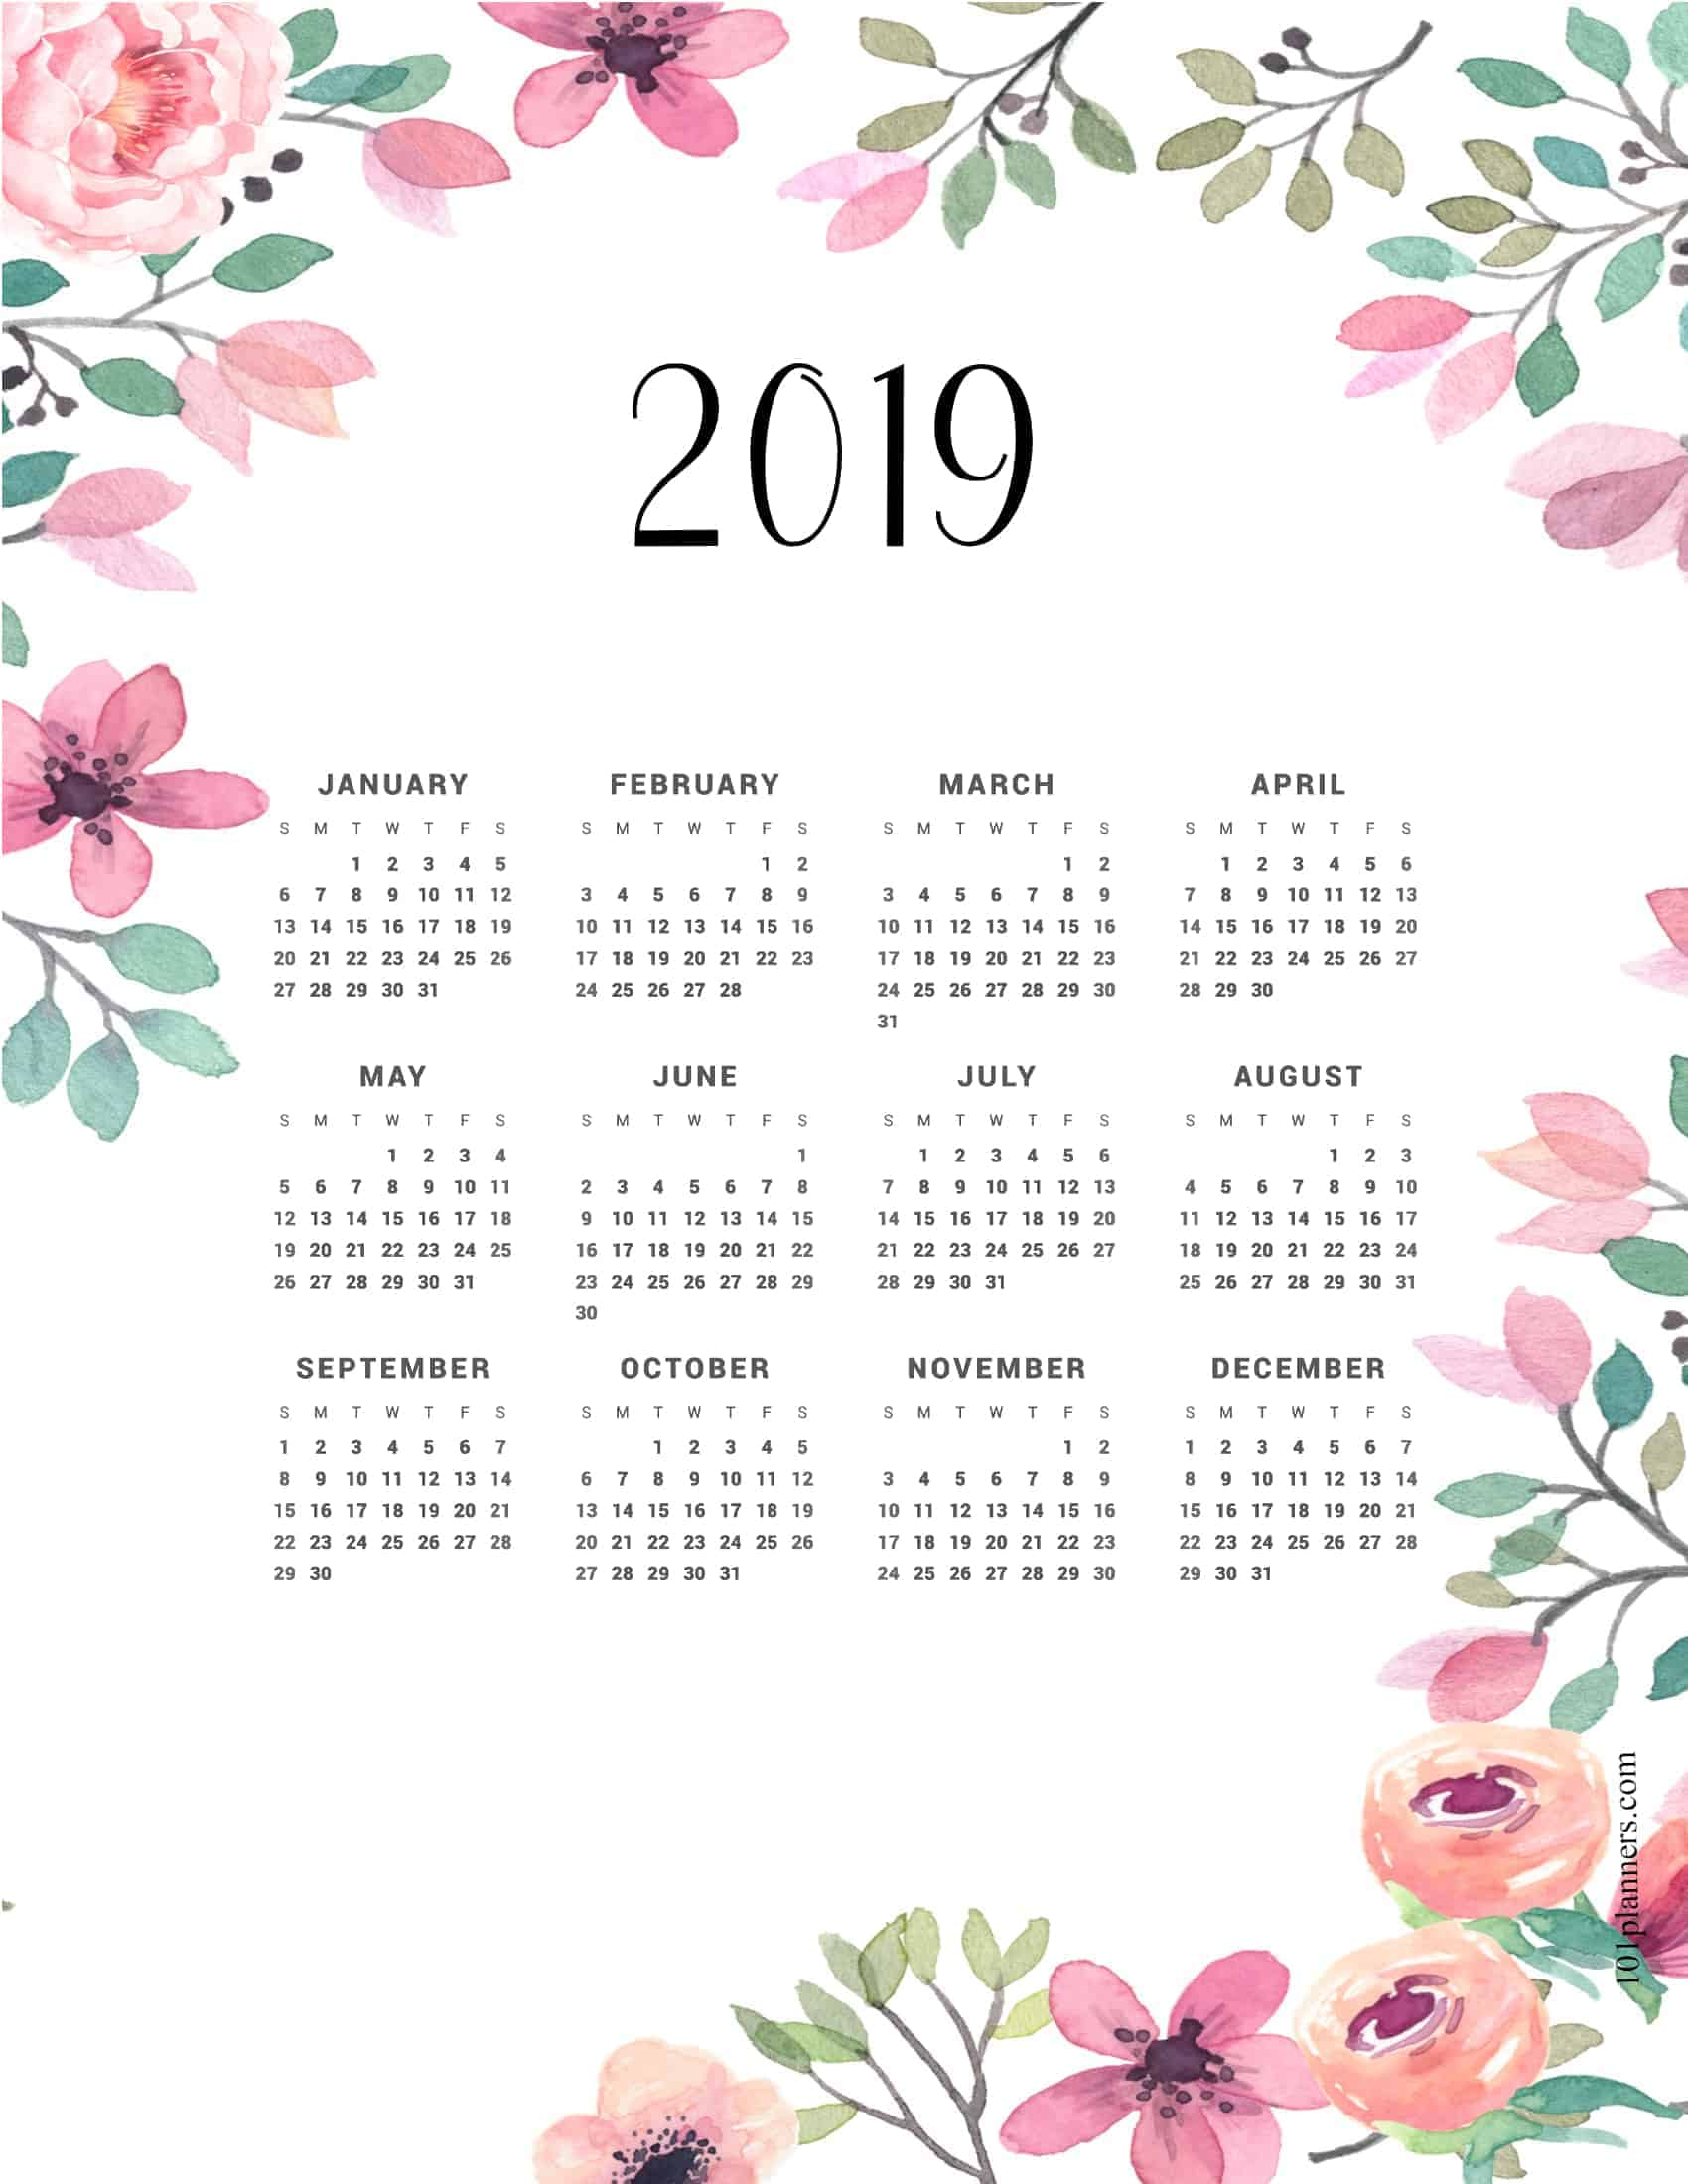 graphic regarding Printable Weight Loss Calendars named Cost-free printable 2019 per year calendar at a look 101